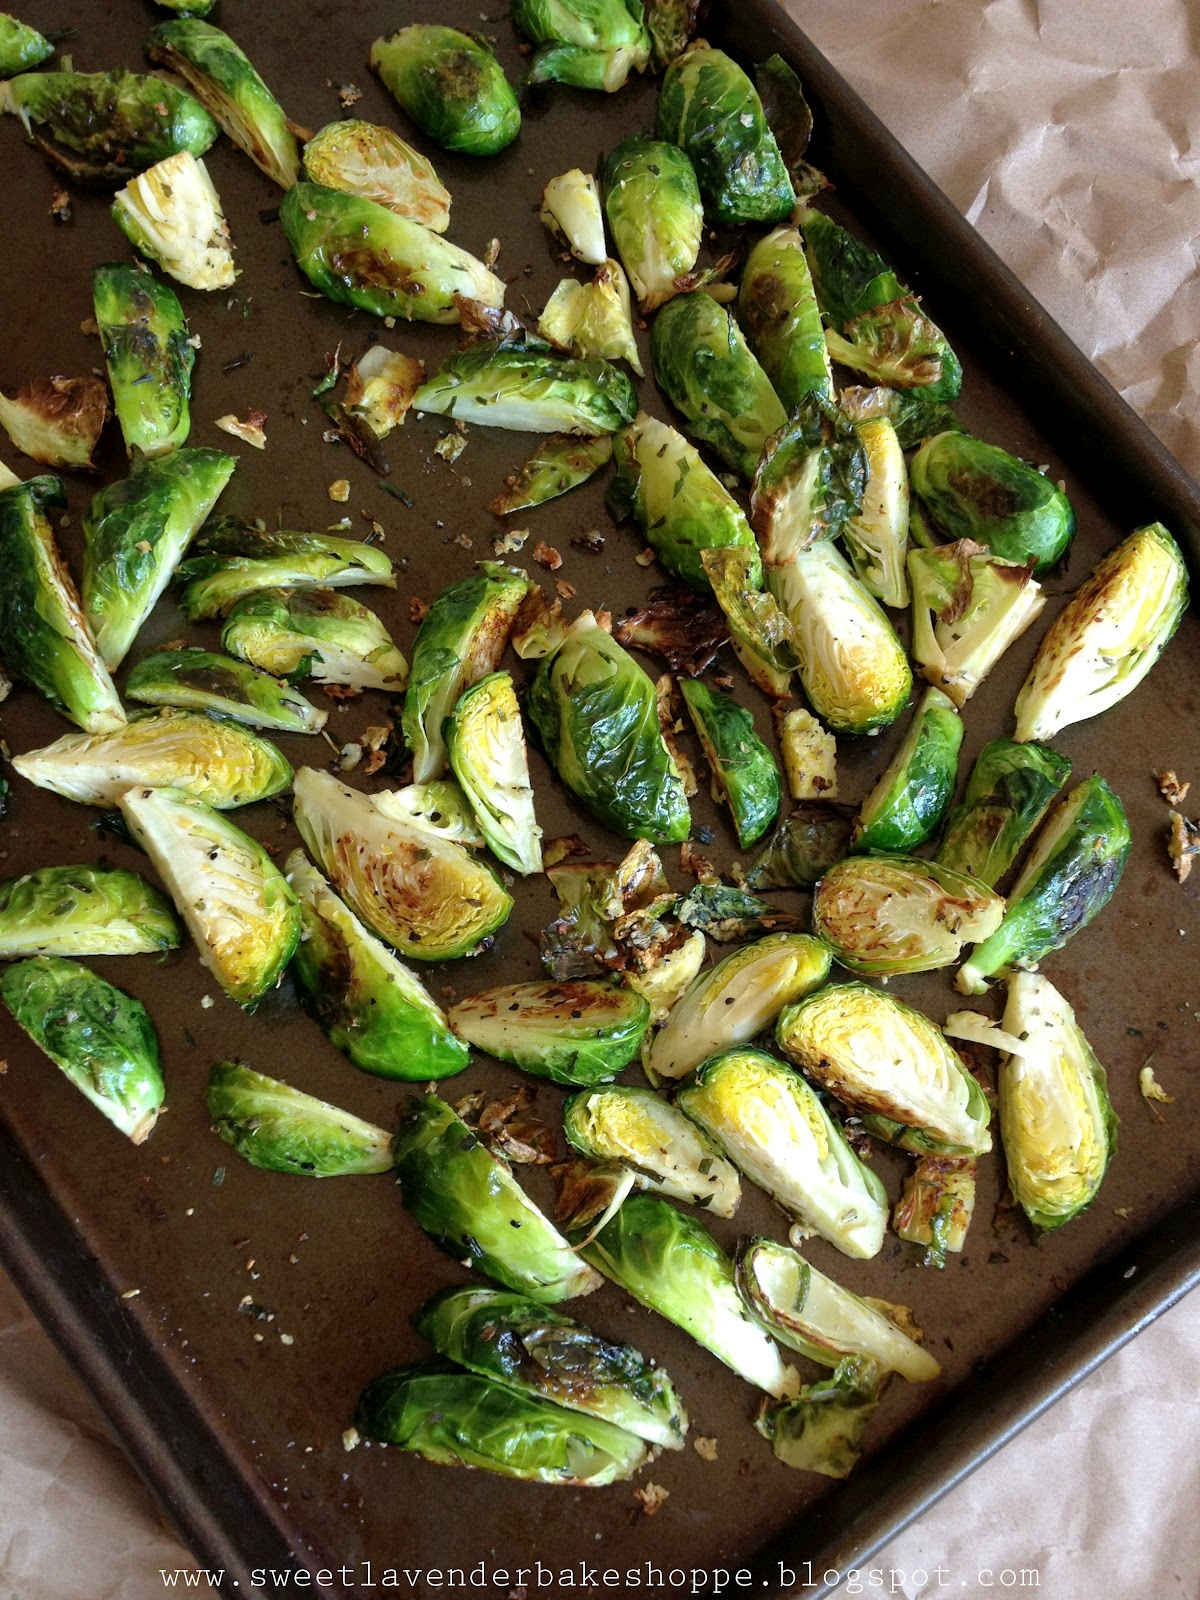 ... oregano brussels sprouts roasted oregano brussels r r brussels sprouts